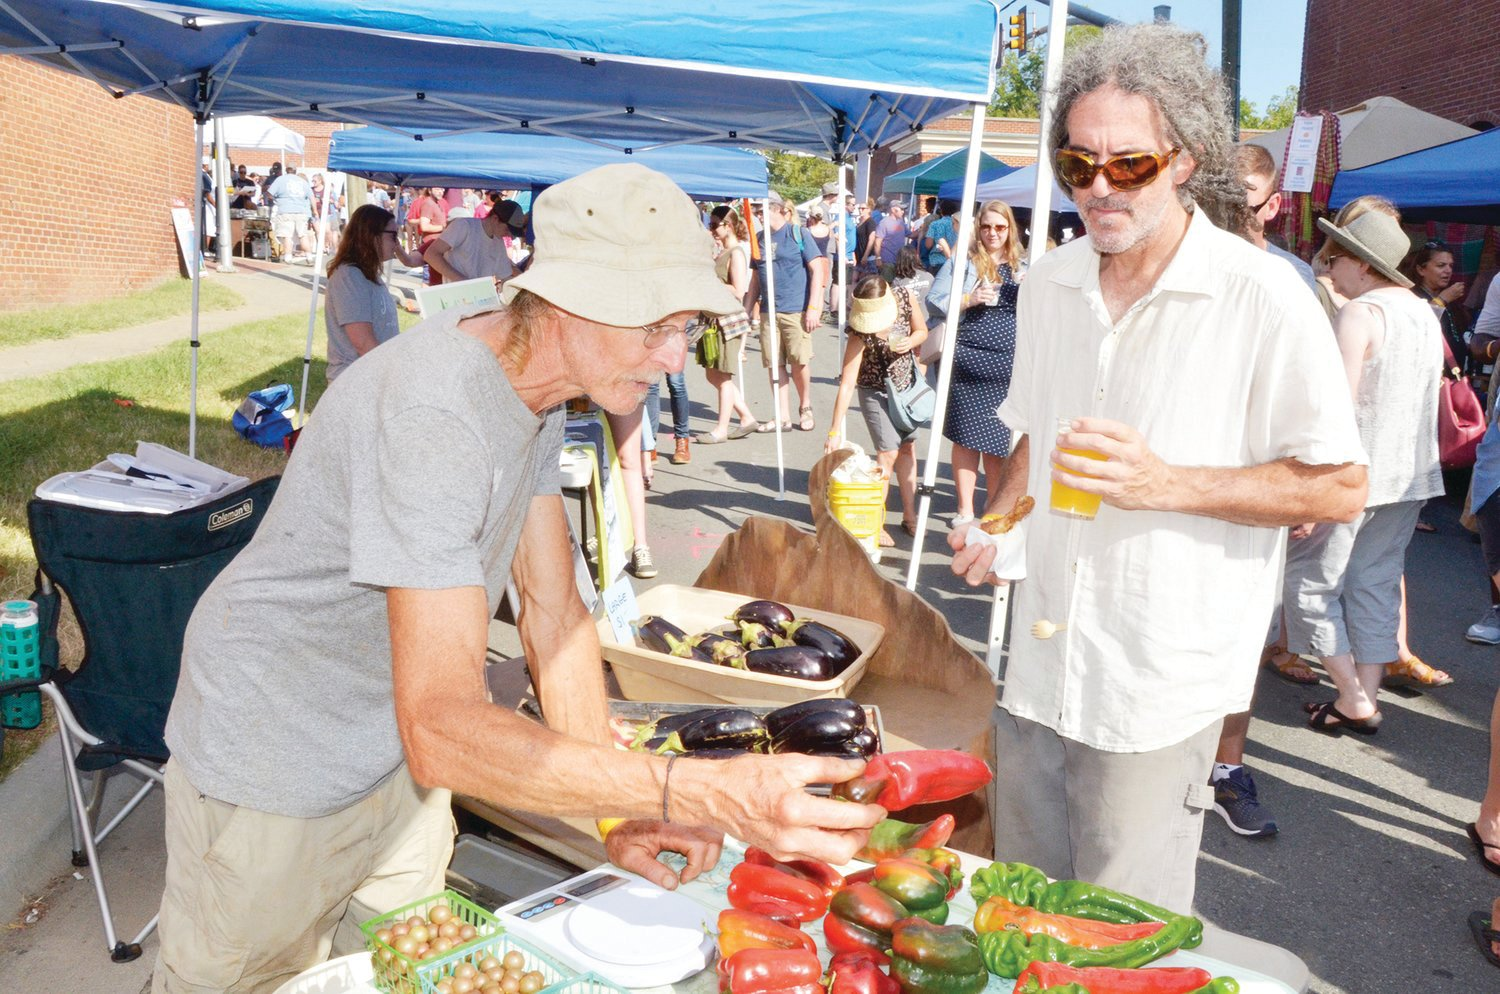 Doug Jones, pepper farmer, gives David DelVecchio a brief tour of his produce available at Pepperfest last Sunday. DelVecchio said that Jones is the reason for the festival; he's been breeding peppers for years, and started with a tasting area on Lorax Lane.